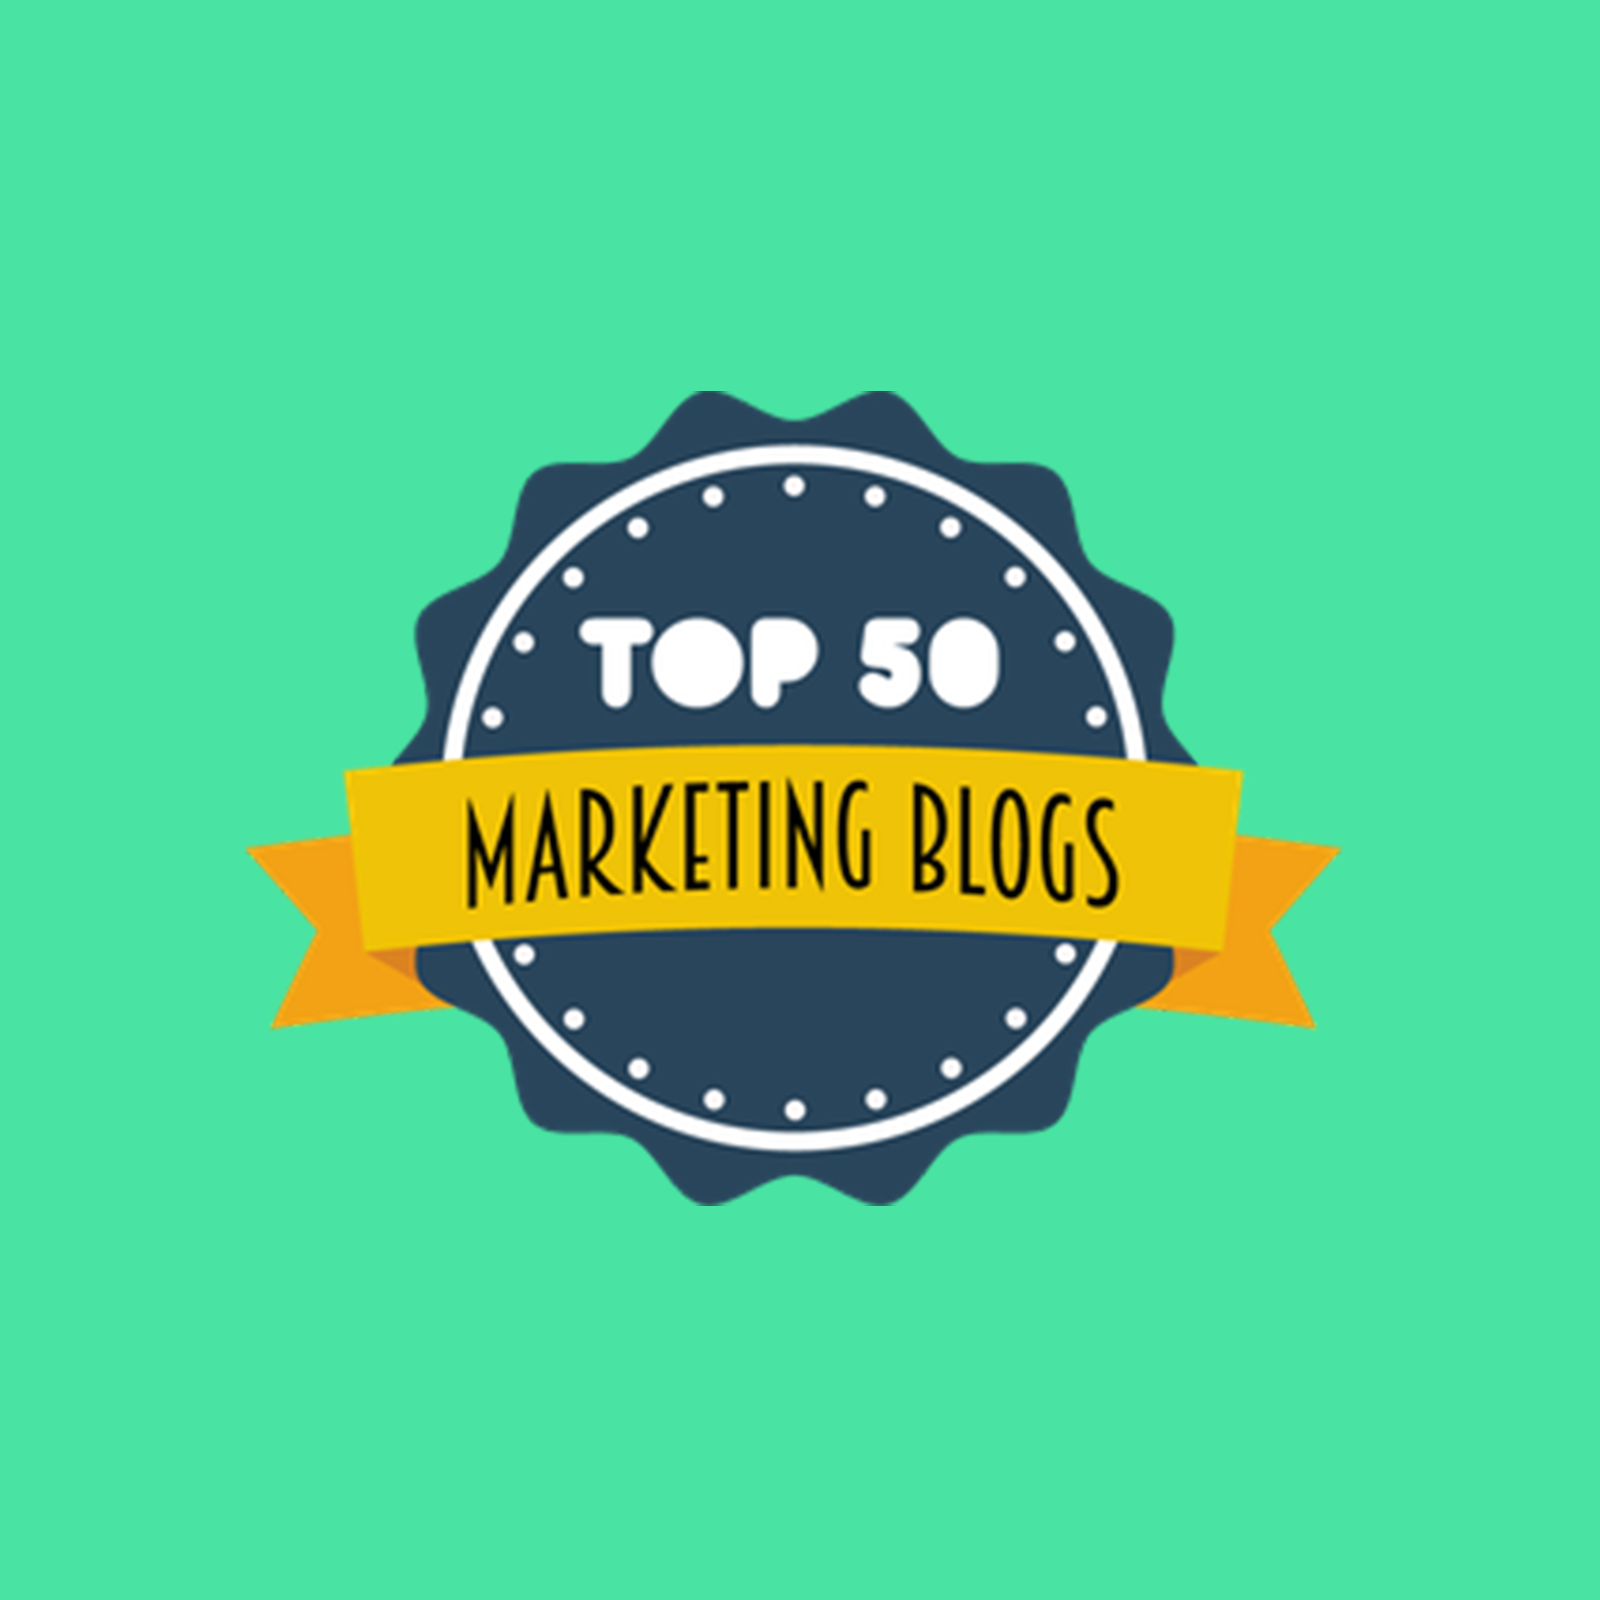 ROB NICOLAS Blog bei Top 50 Marketingblogs ausgezeichnet